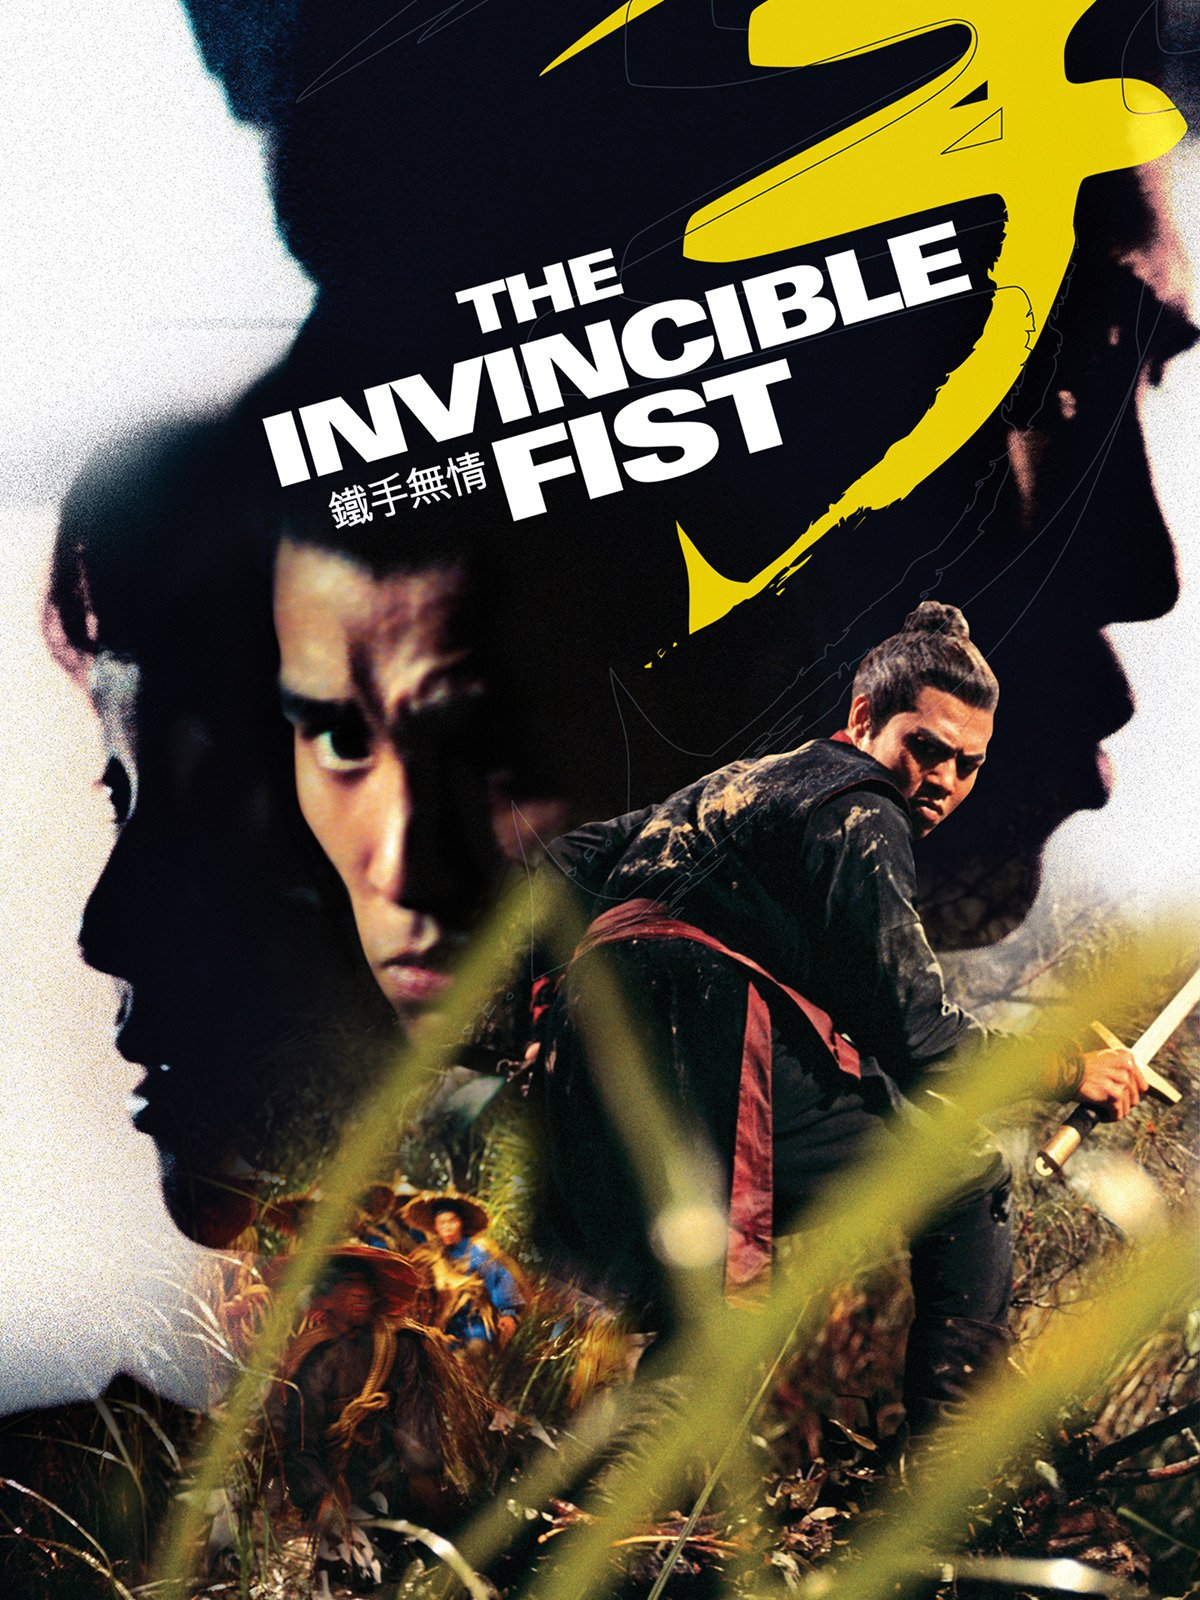 The Invincible Fist